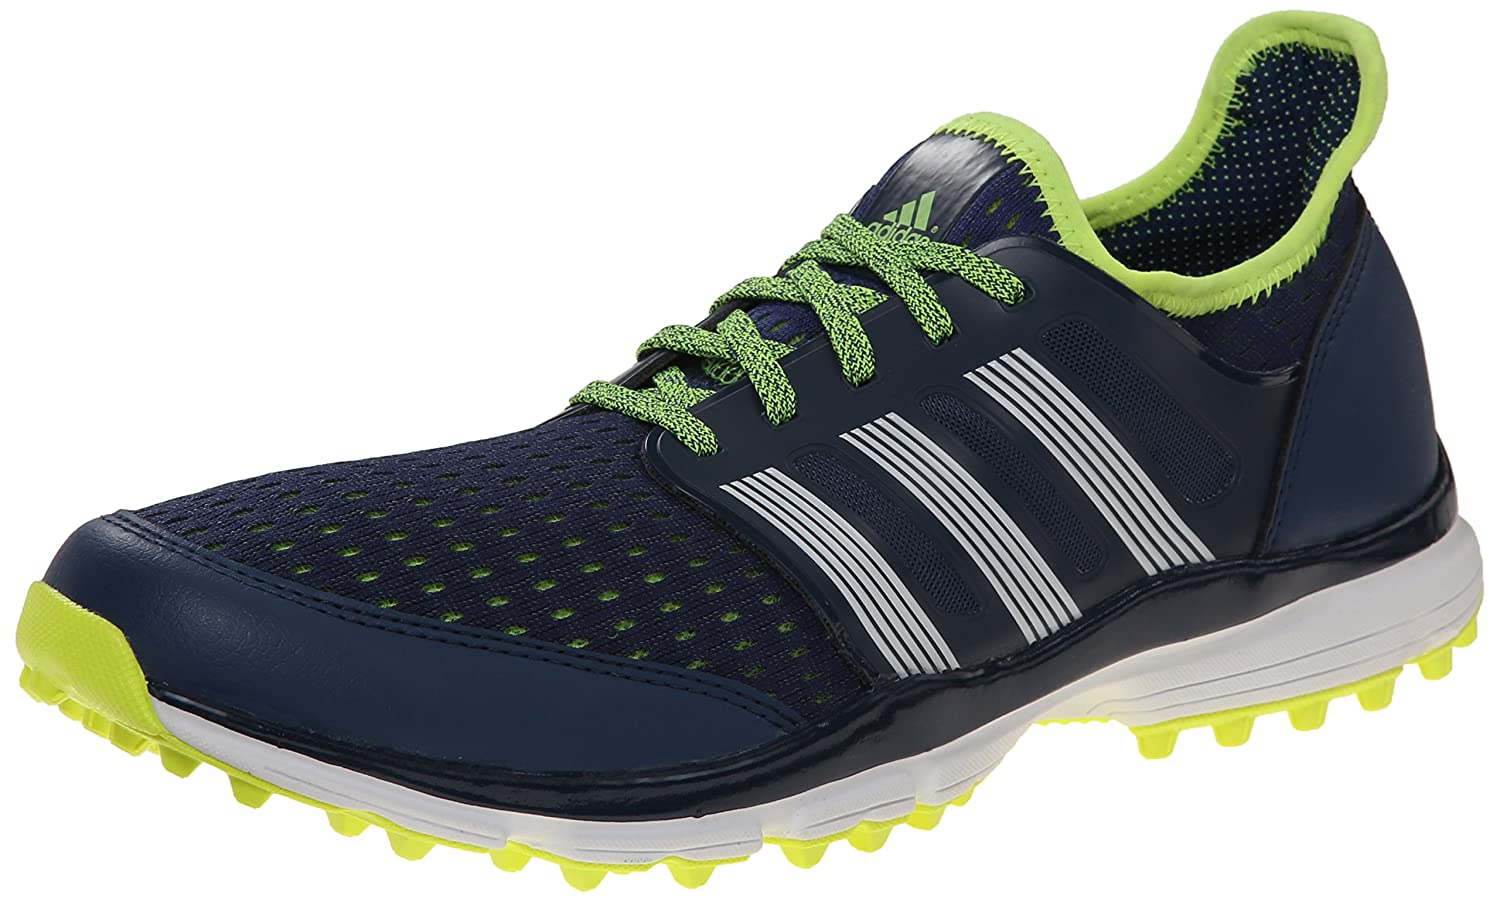 Adidas Uomo Climacool Golf Spikeless Night Marine/Ftwr Bianco/Solar Giallo Outlet Online 3N5R89